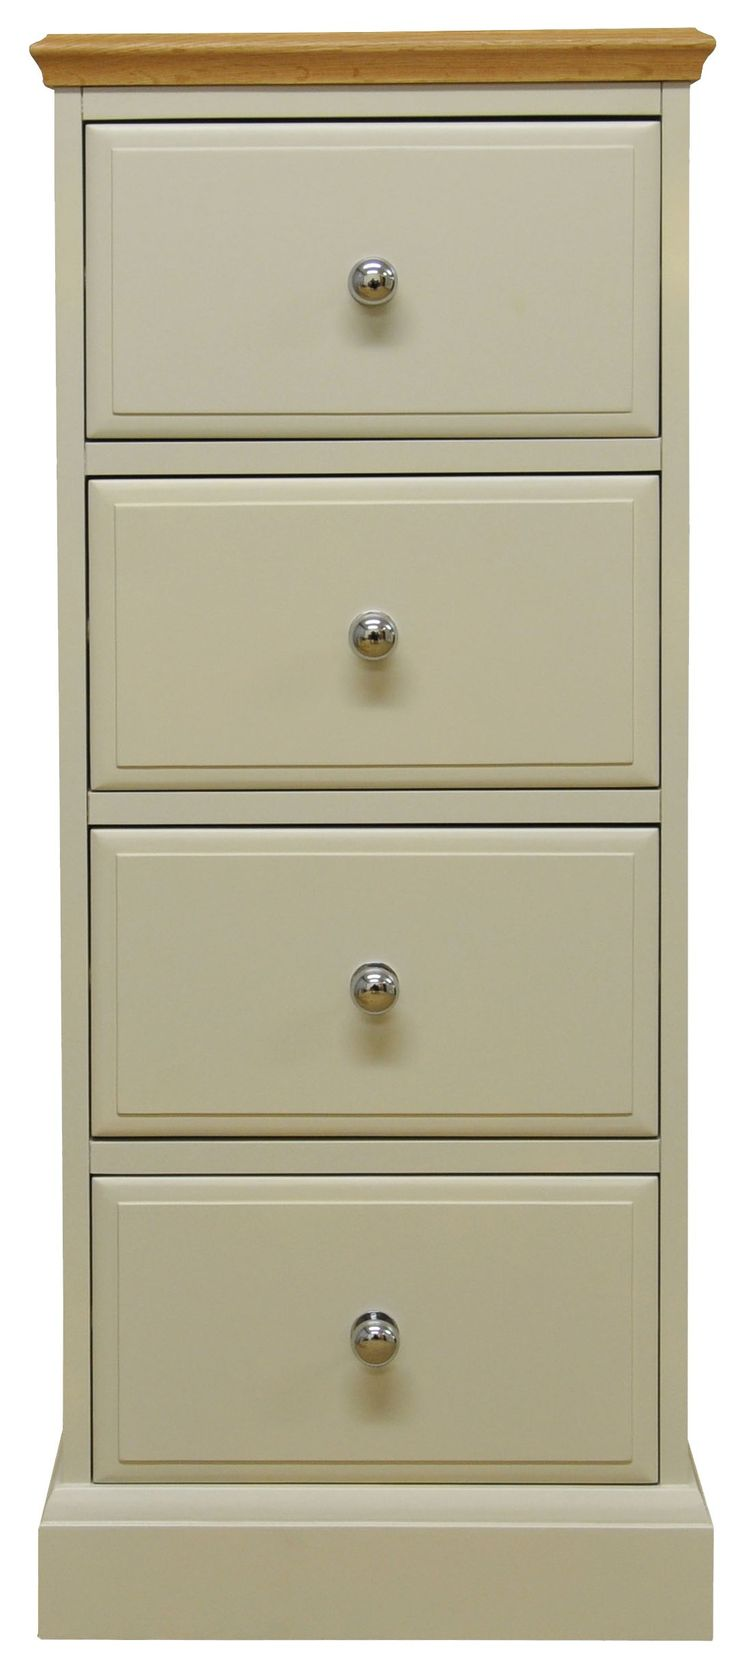 http://www.bonsoni.com/didley-truffle-four-drawer-narrow-chest-of-drawers-with-oak-top-by-kaldors  This Four Drawer Narrow Chest of Drawers brings the appeal of painted furniture with contrasting oak top for a true twist on country style. Choose from metal or oak knobs supplied with every piece.     http://www.bonsoni.com/didley-truffle-four-drawer-narrow-chest-of-drawers-with-oak-top-by-kaldors